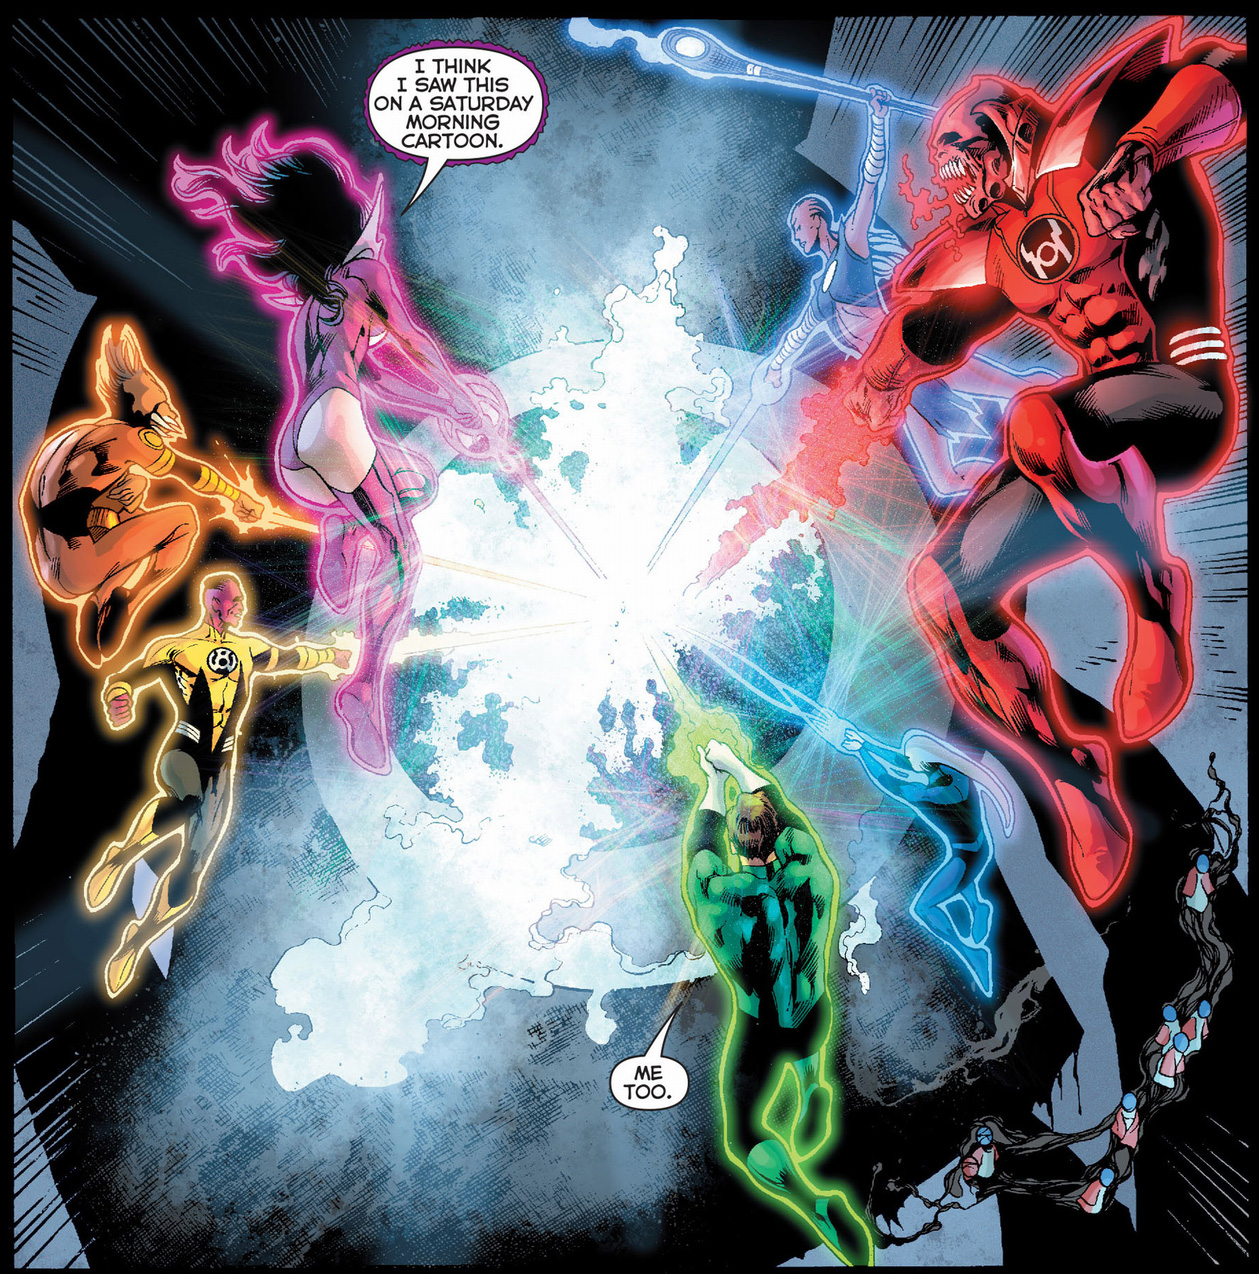 The 7 Lantern Corps Attacks The Black Battery | Comicnewbies